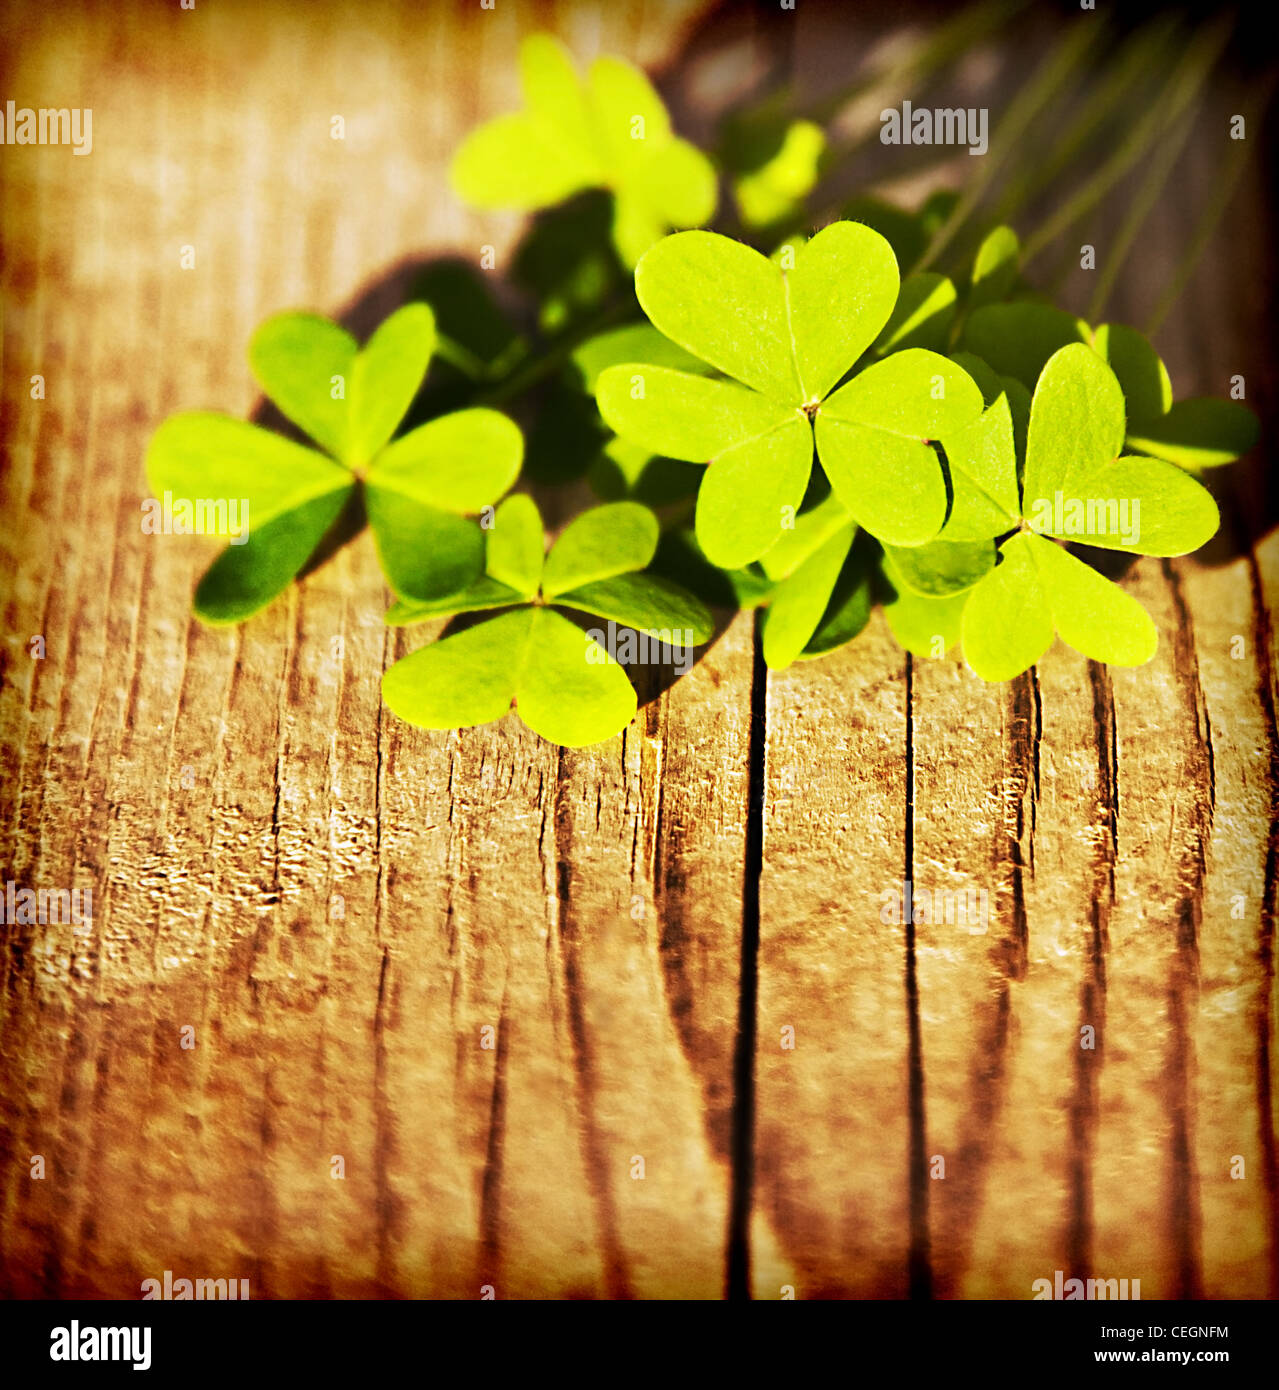 Fresh clover leaves over wooden background, green spring floral border, lucky shamrock, St.Patrick's day holiday - Stock Image